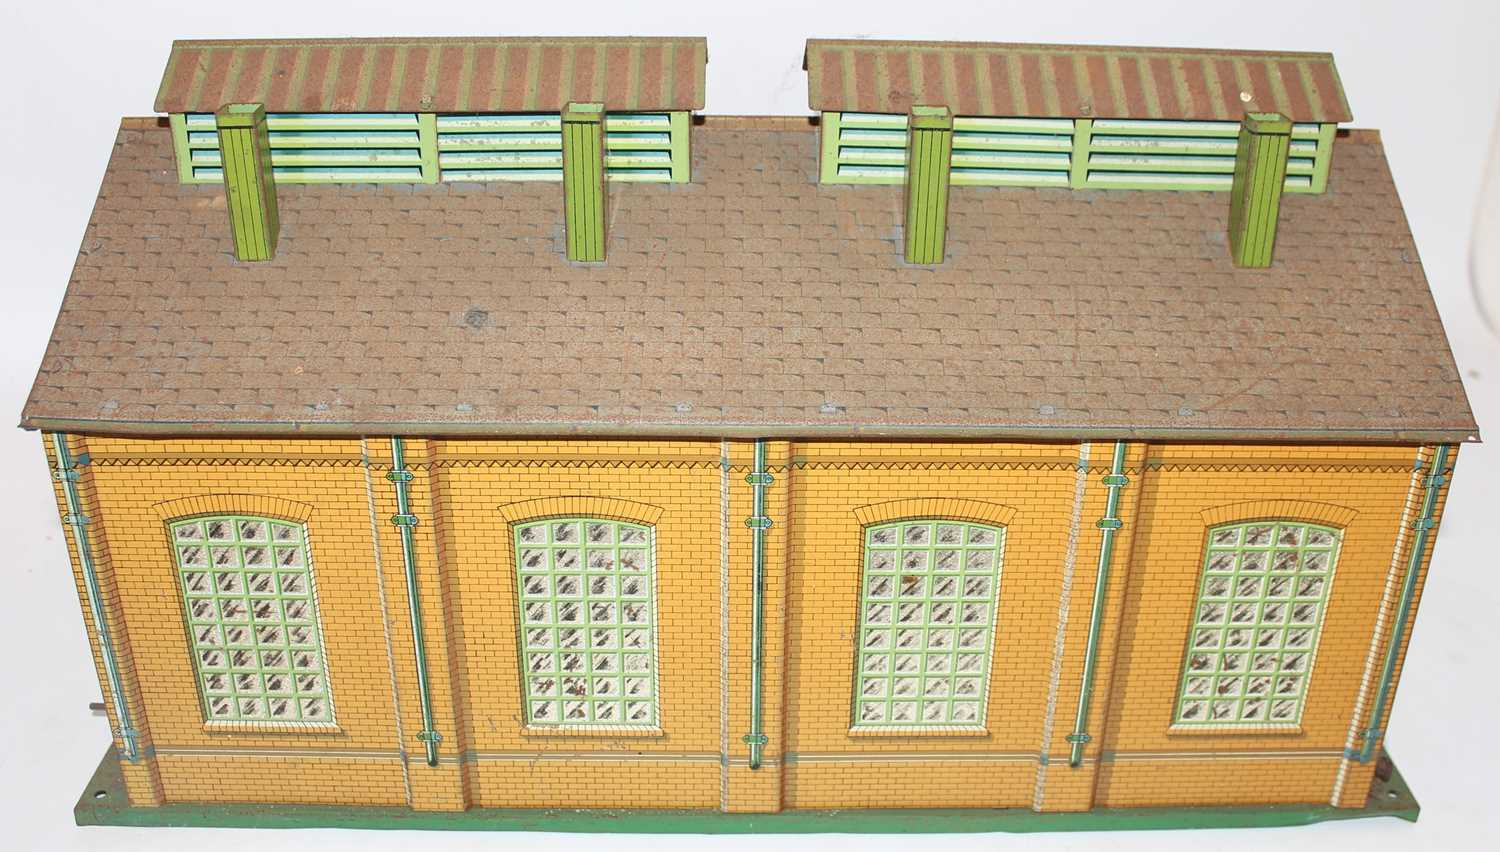 1935-41 Hornby E2E engine shed green base, yellow ridge tiles, inside of doors plain, missing one - Image 4 of 4